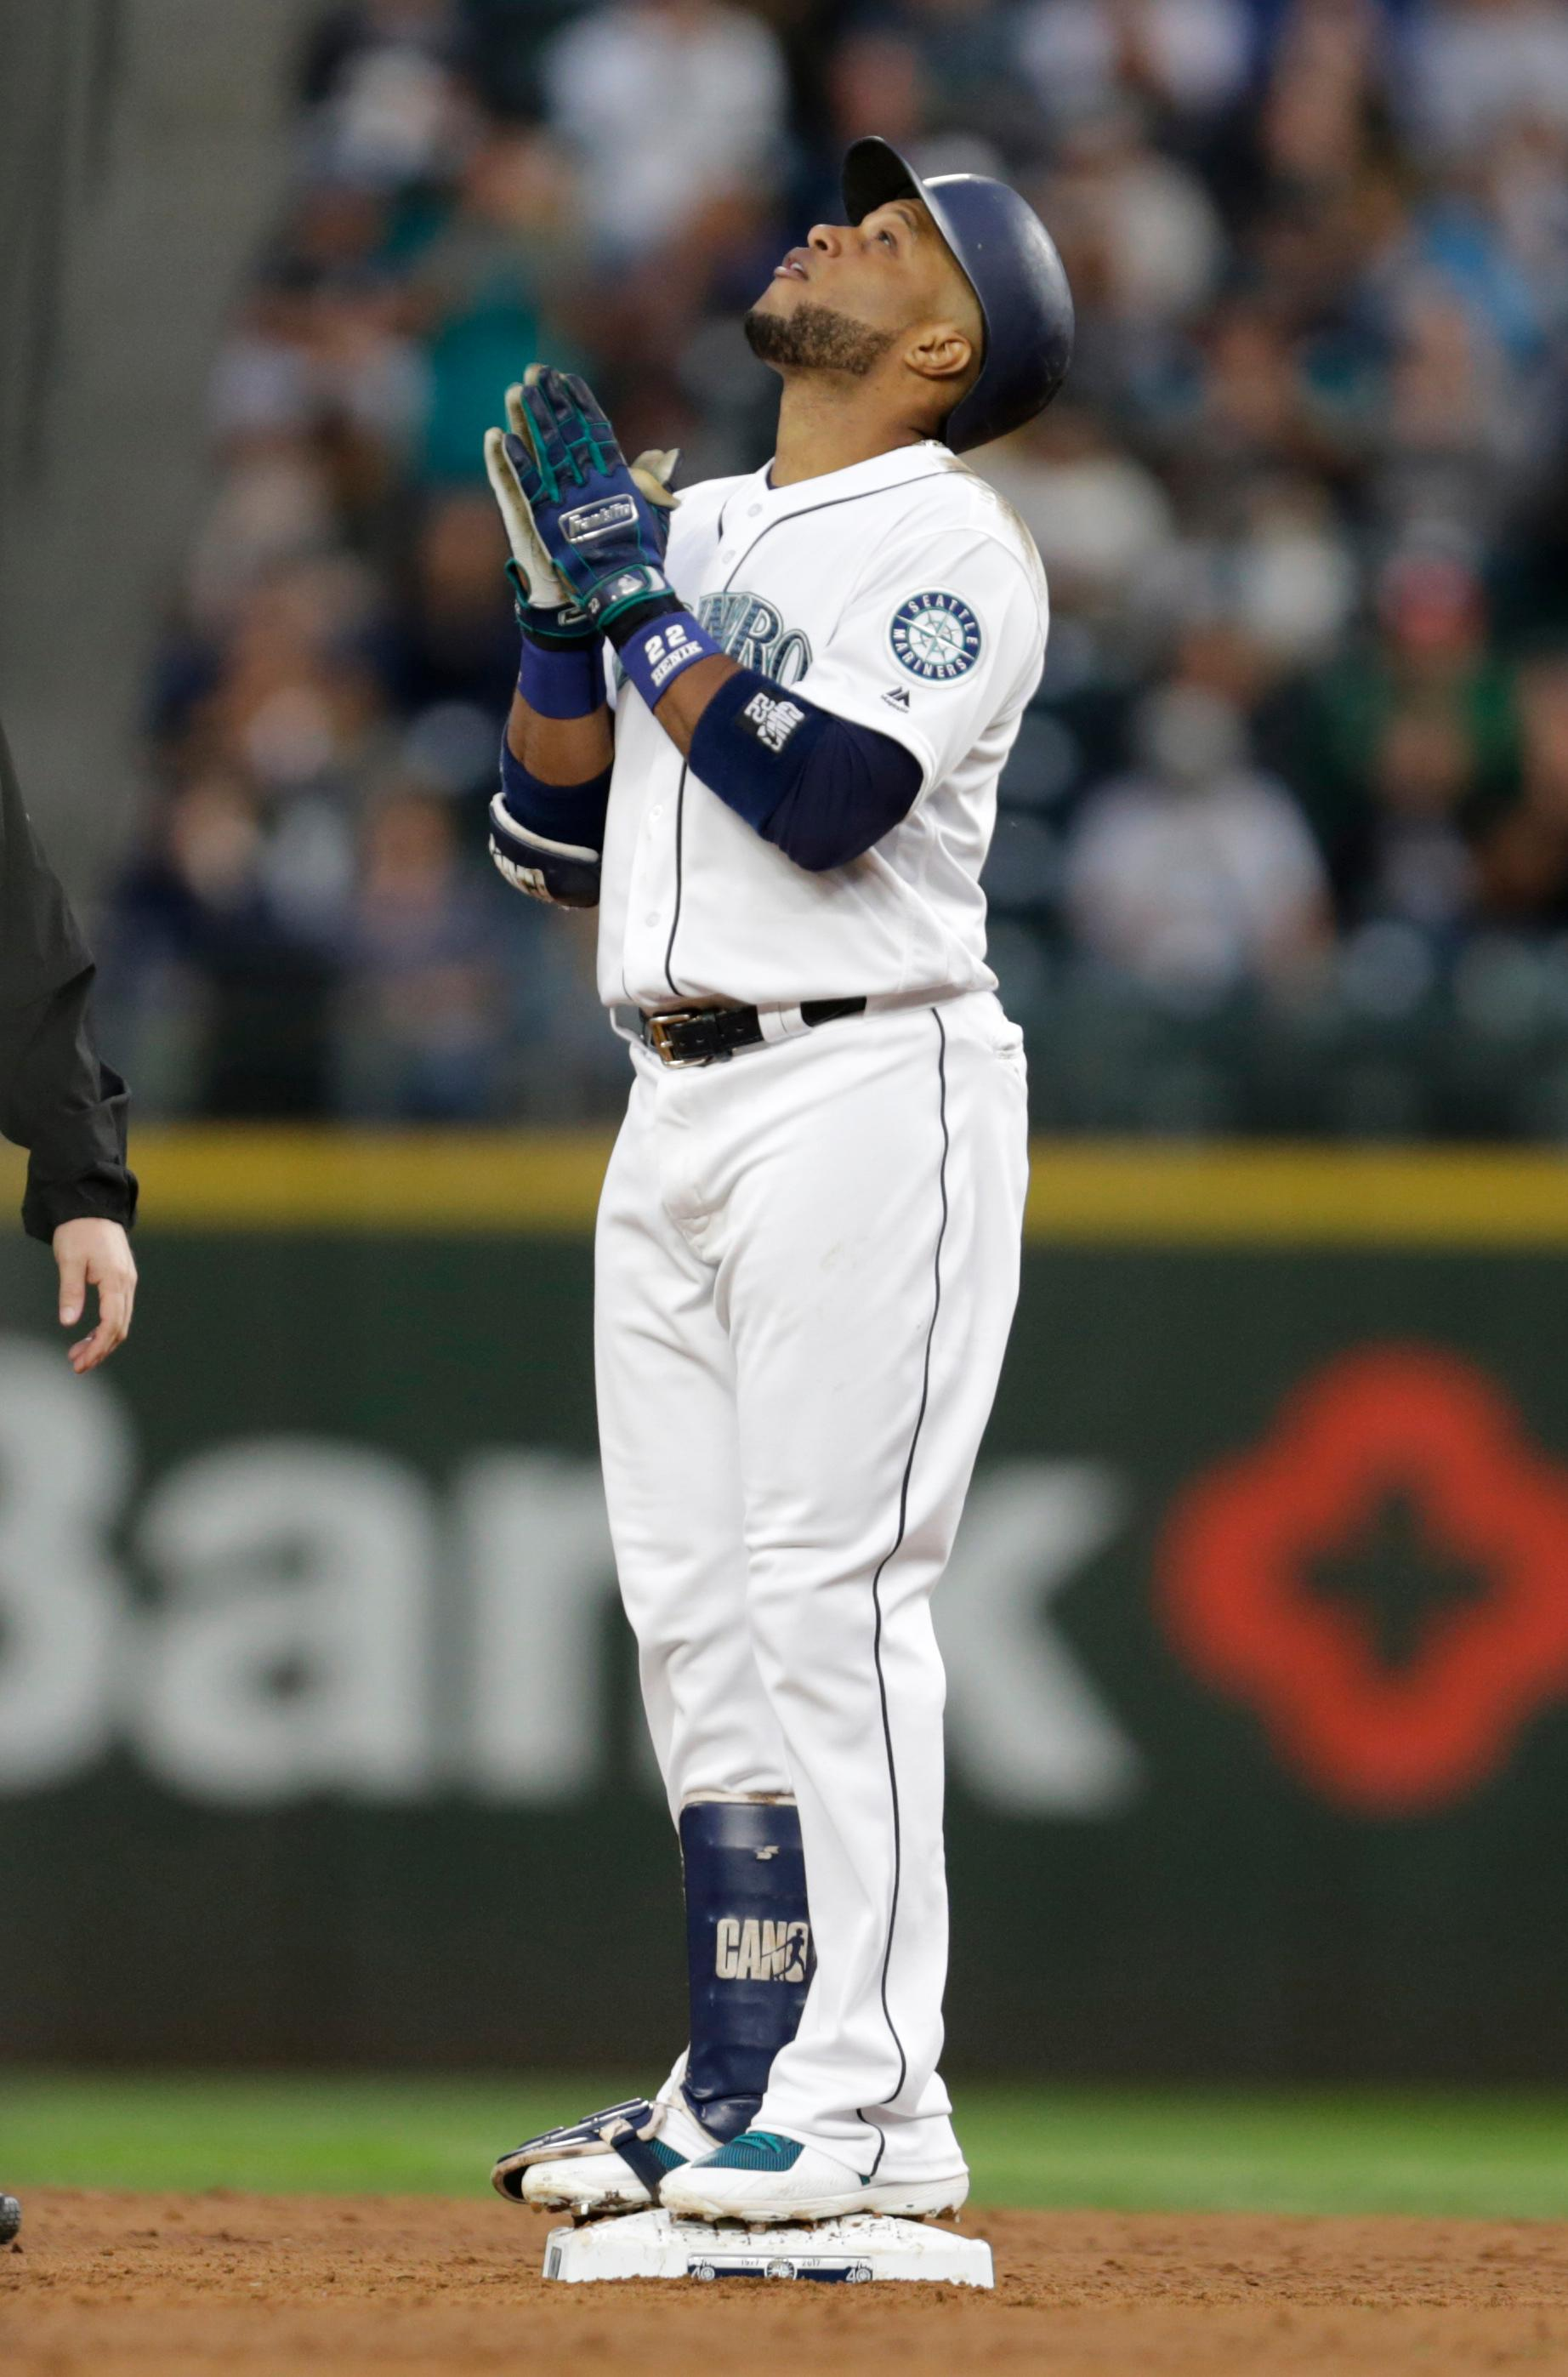 Seattle Mariners' Robinson Cano reacts while standing on second base after hitting an RBI double against the Los Angeles Angels during the third inning of a baseball game Saturday, Sept. 9, 2017, in Seattle. (AP Photo/John Froschauer)